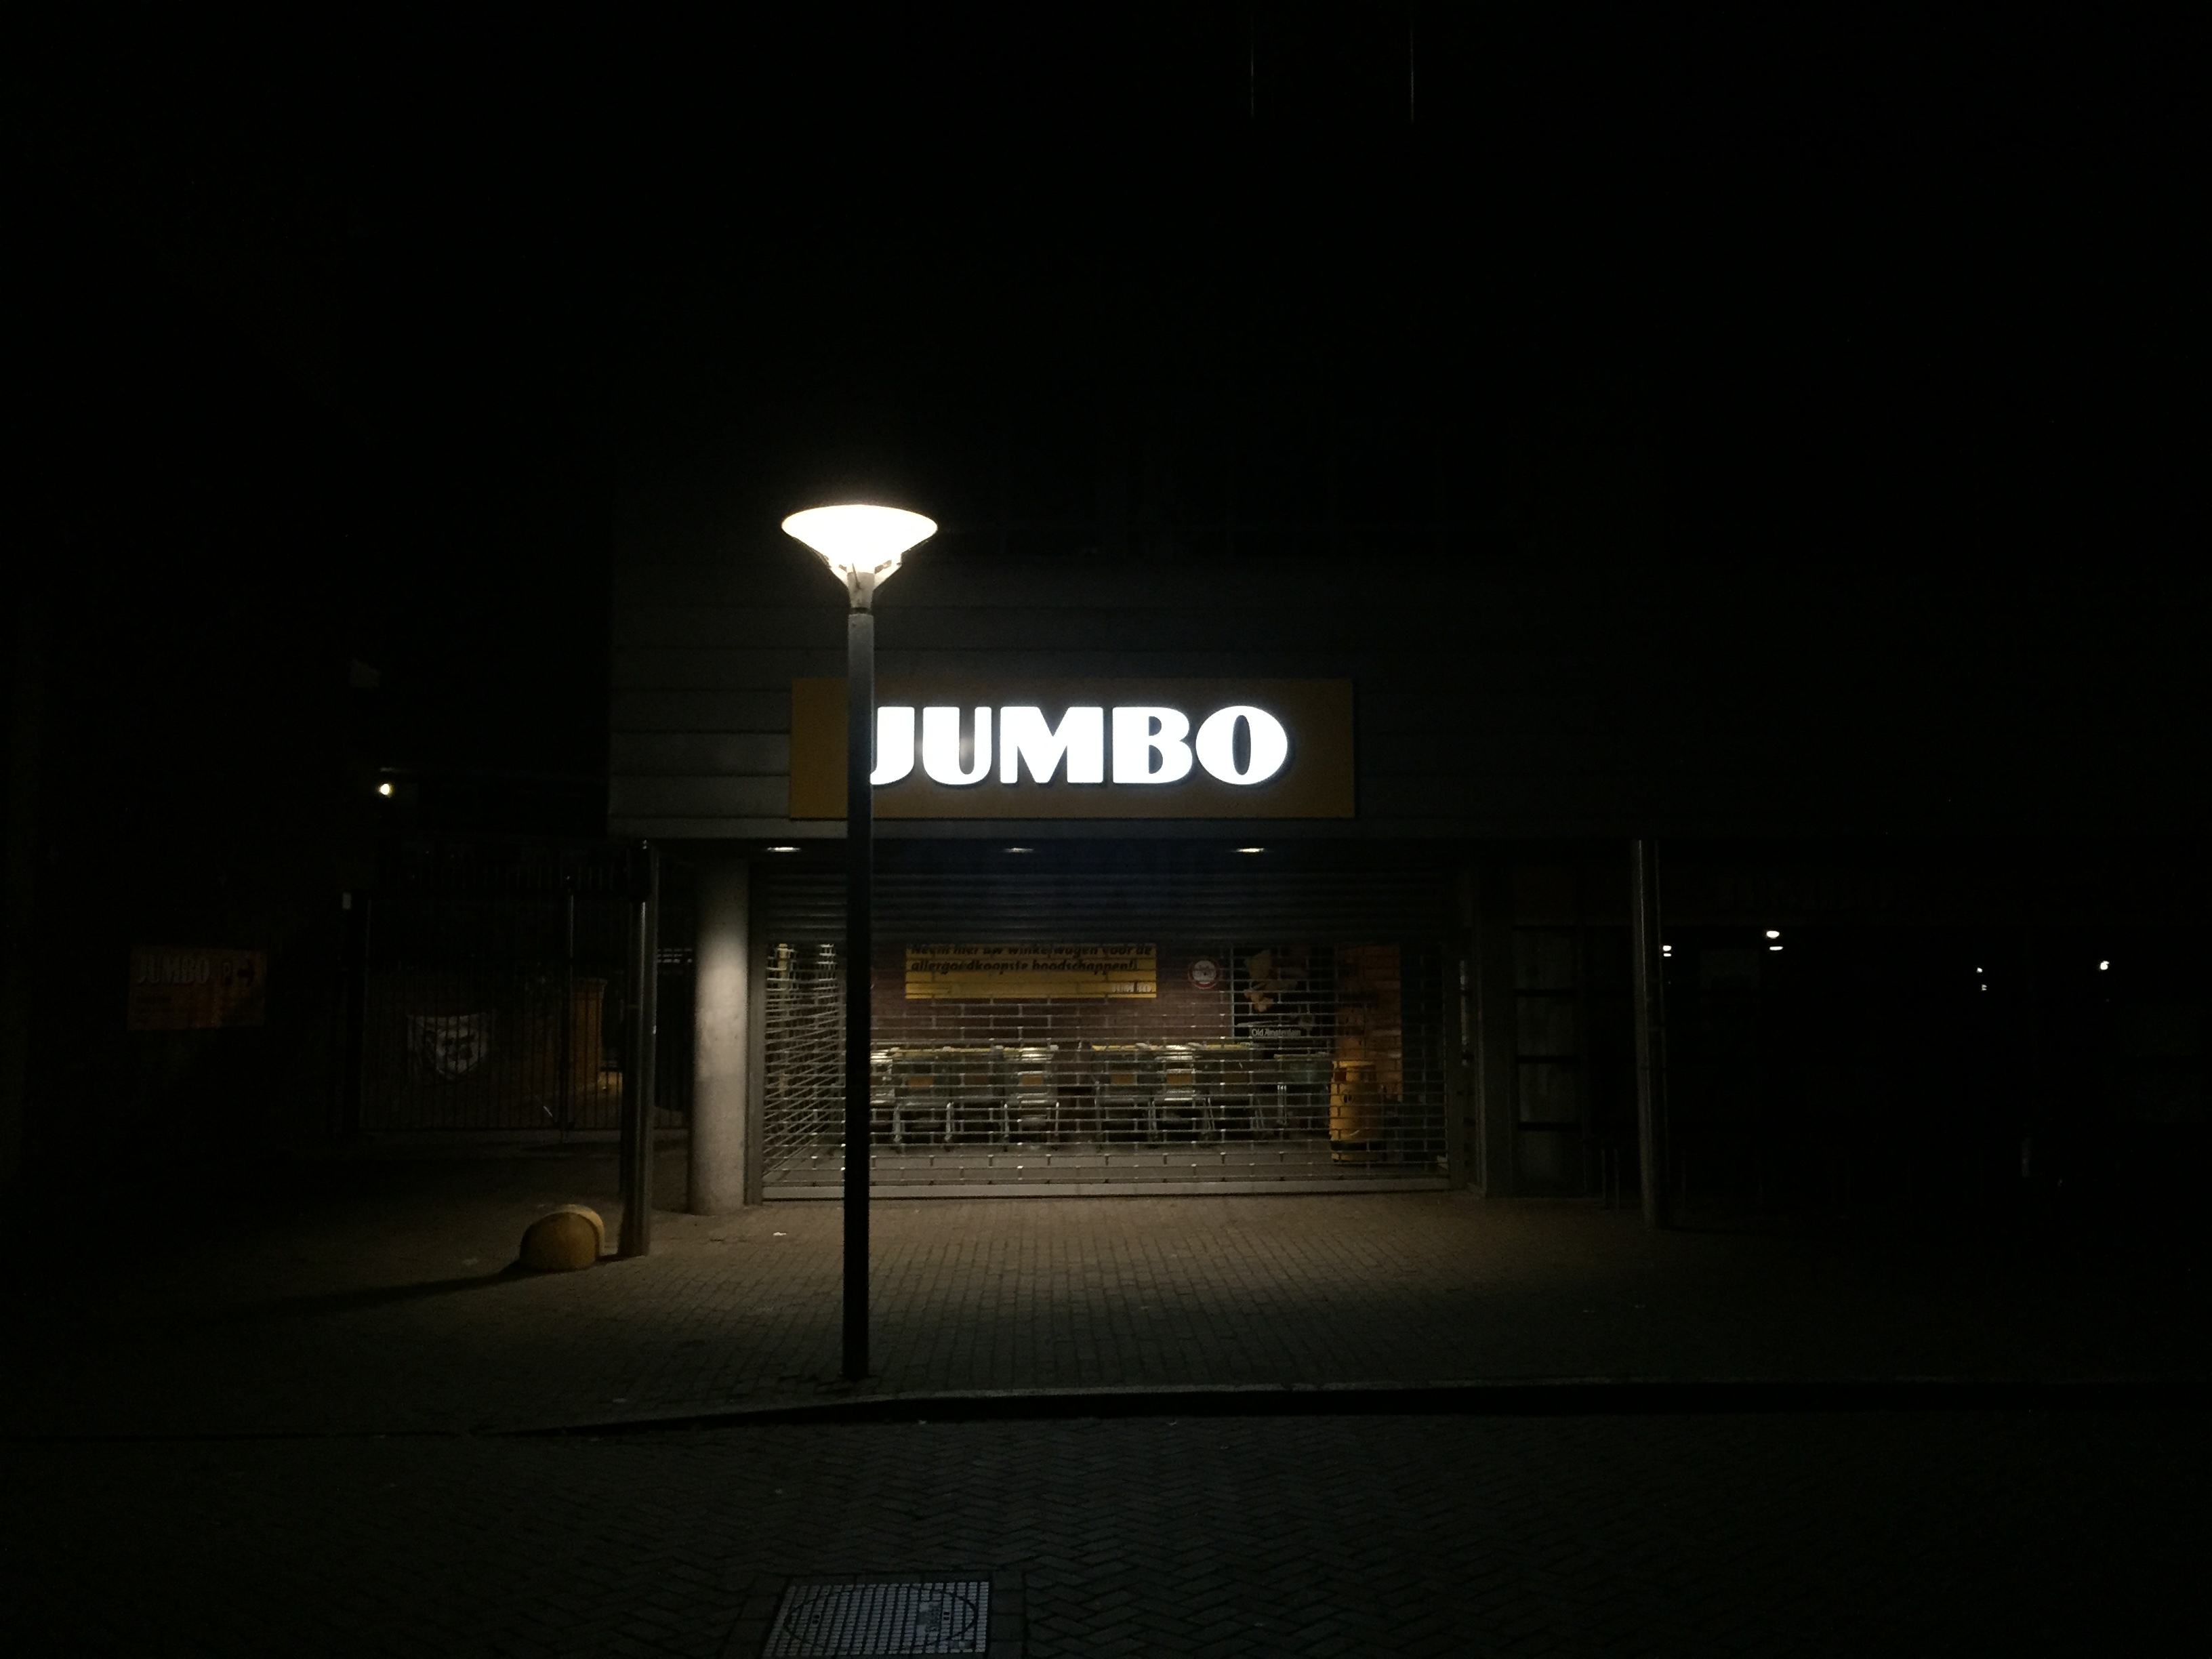 iPhone 6 Jumbo supermarkt